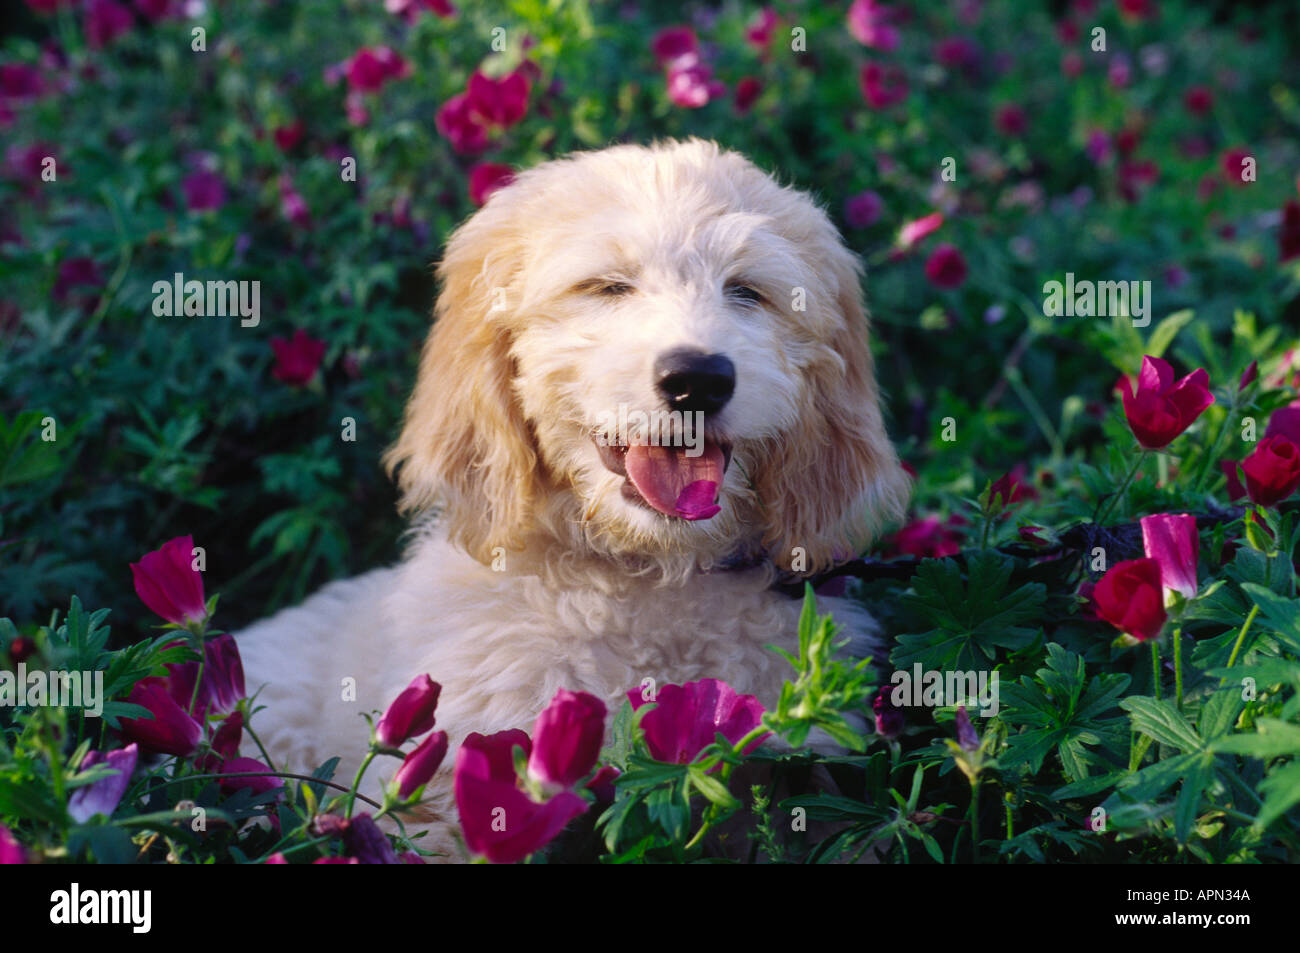 Golden doodle puppy dog eating fleurs Photo Stock